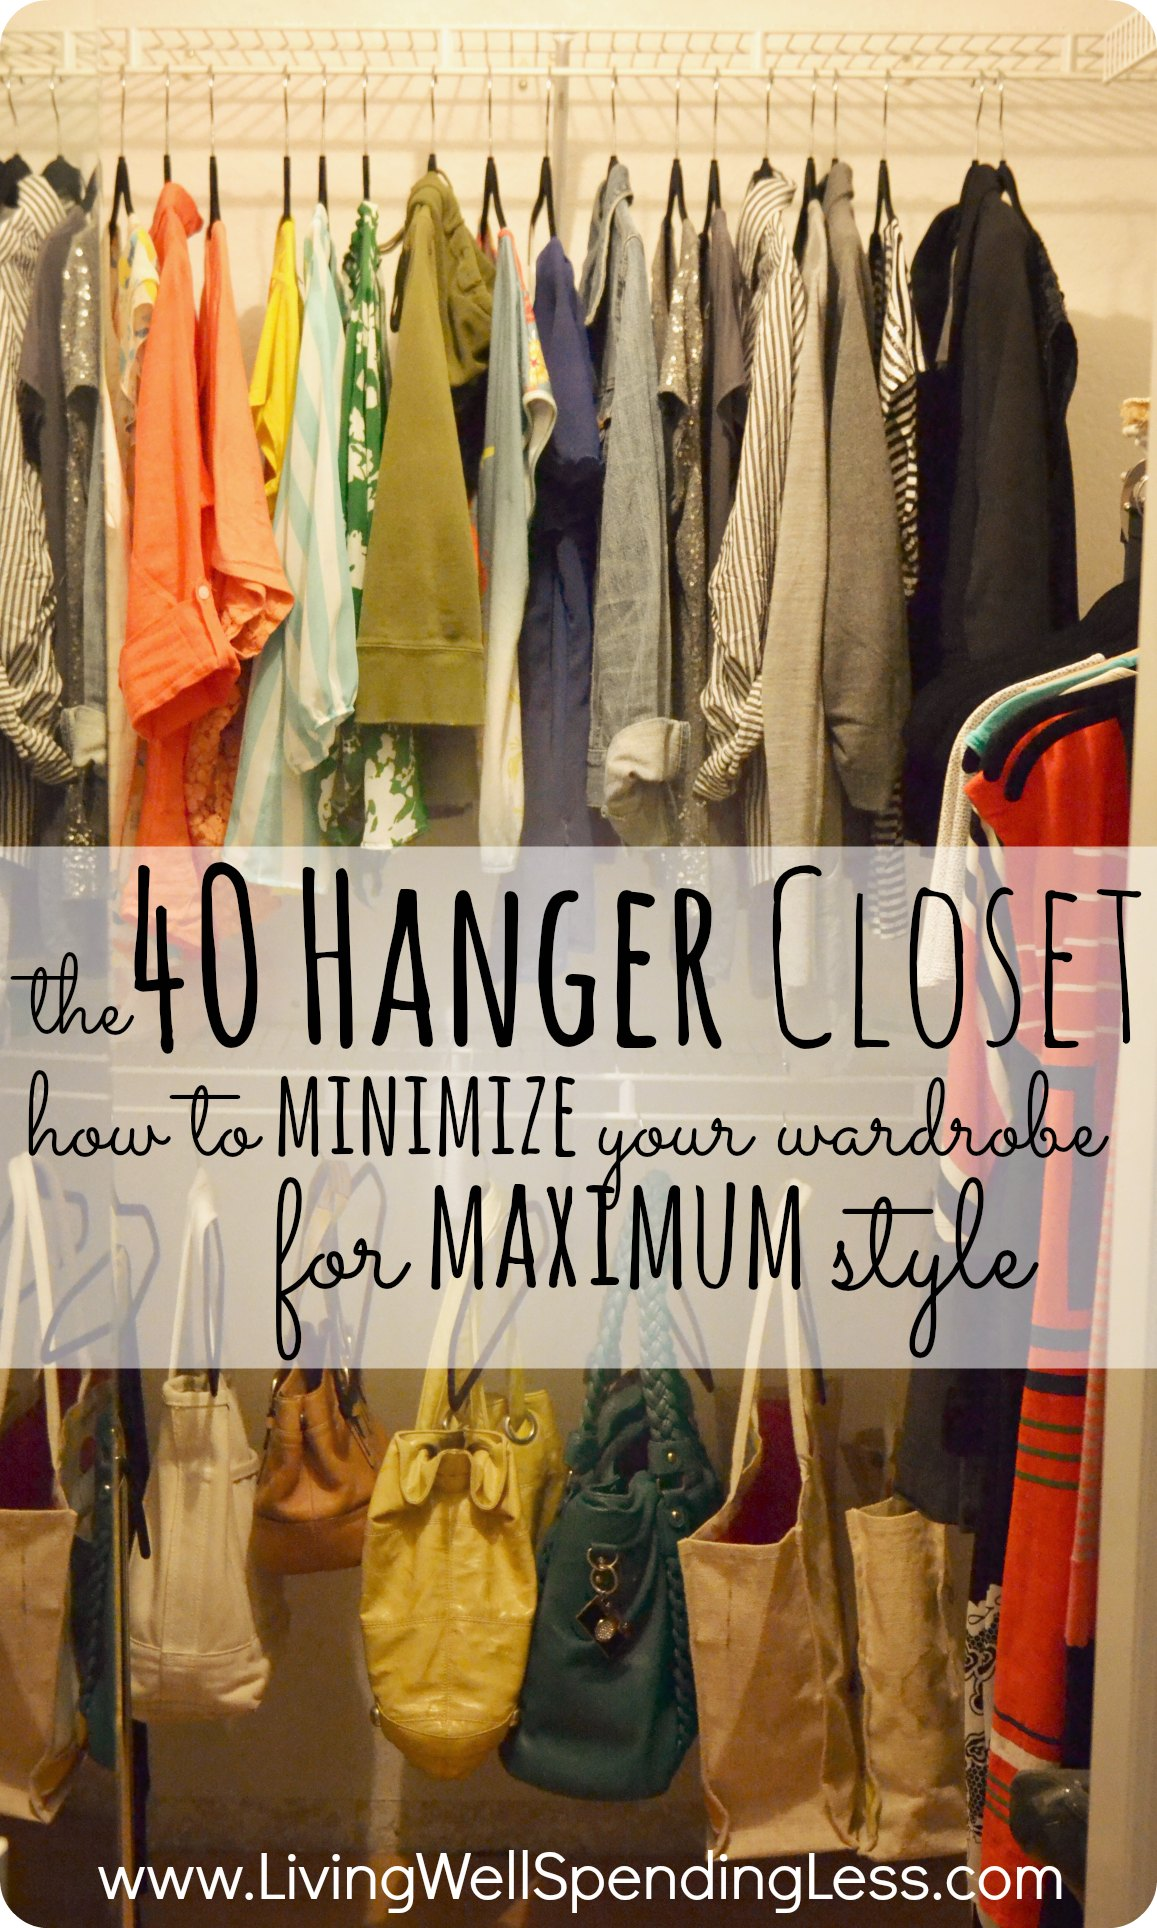 The 40 Hanger Closet » The 40 Hanger Closetu2013How To Mimize Your Wardrobe For  Maximum Style. WOW! Super Motivating Post About Paring Down Your Closet To  Just ...